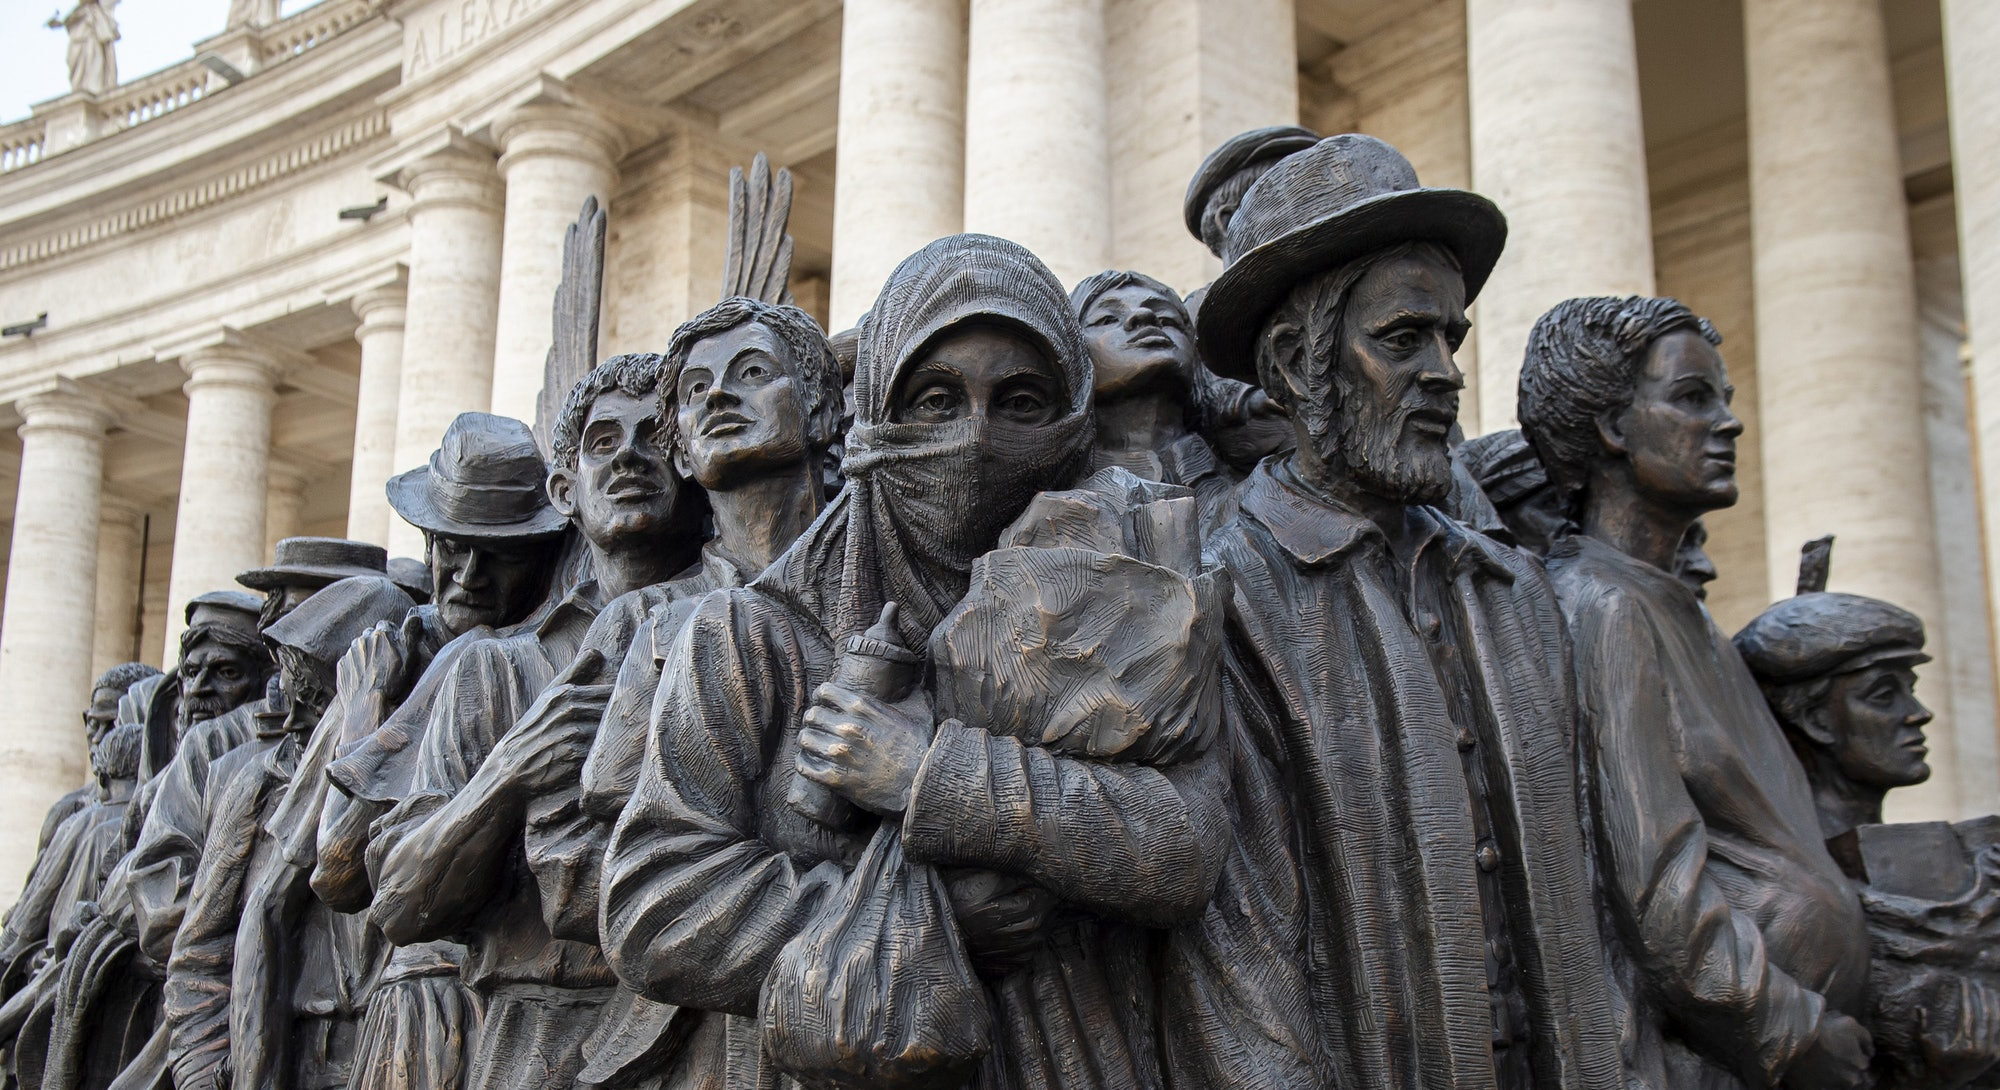 Close-up of a sculpture called 'Angels Unaware' by Canadian sculptor Timothy P. Schmalz depicting a group of 140 migrants of various cultures and from different historic times, following a mass for World Day of Migrants and Refugees at the Vatican. (Photo by: Godong/Universal Images Group via Getty Images)